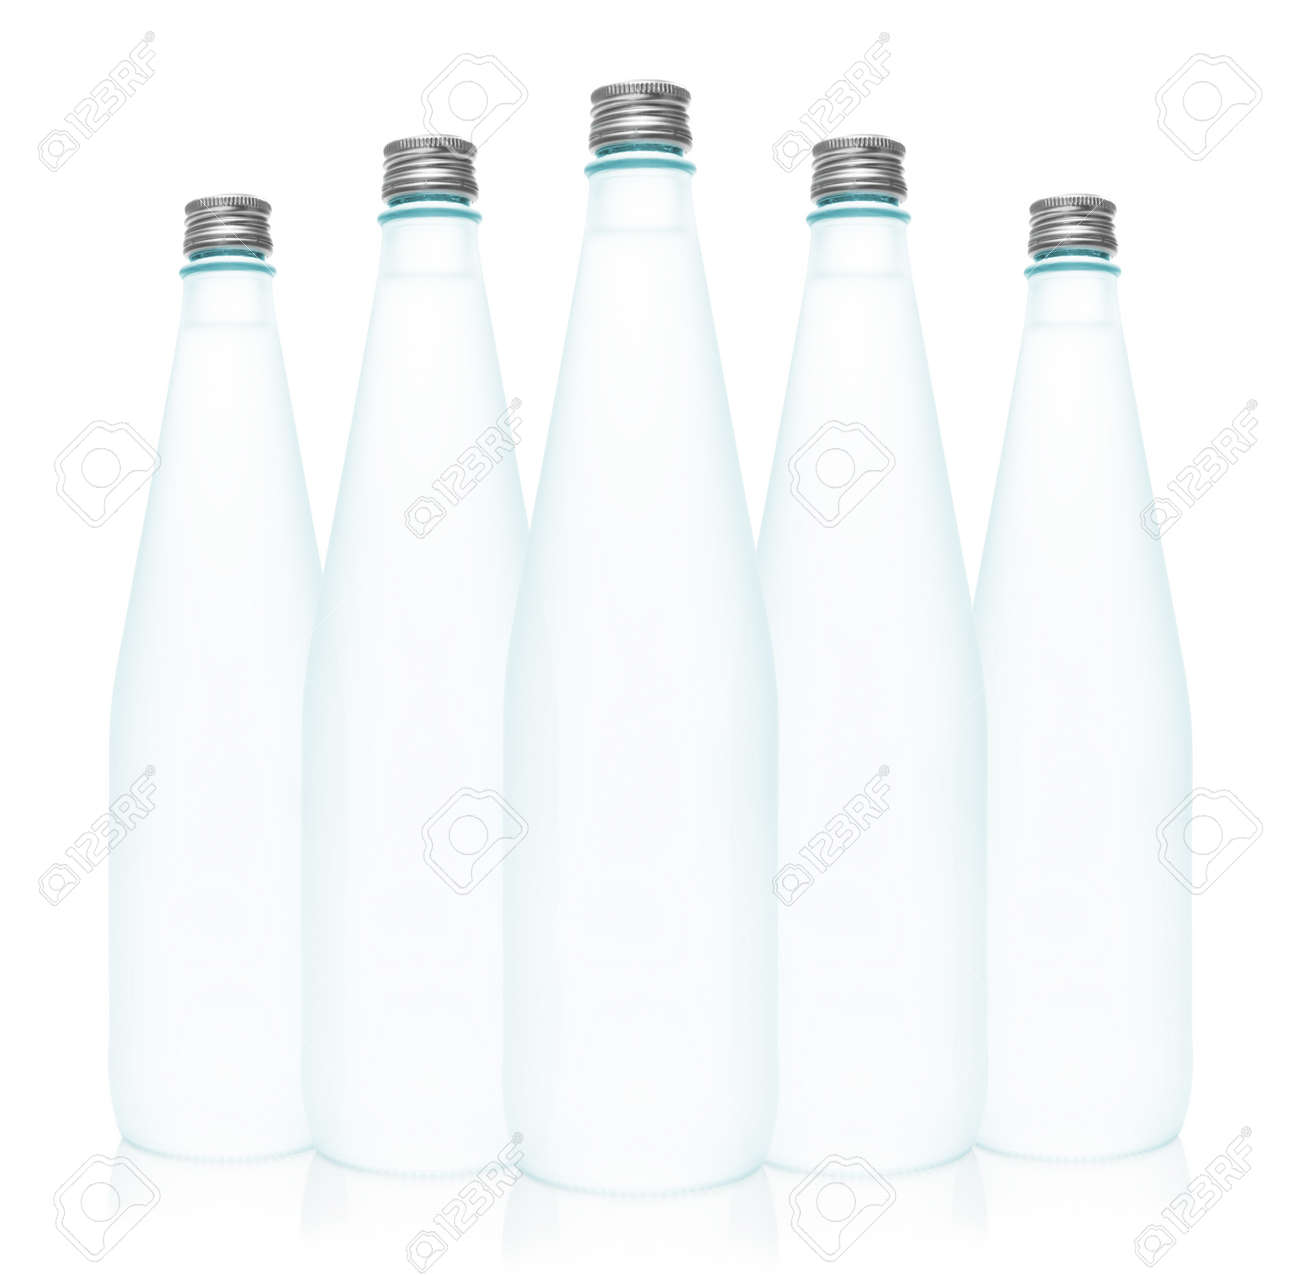 6aaacc12b2c Isolated glass water bottles on white background Stock Photo - 17925614